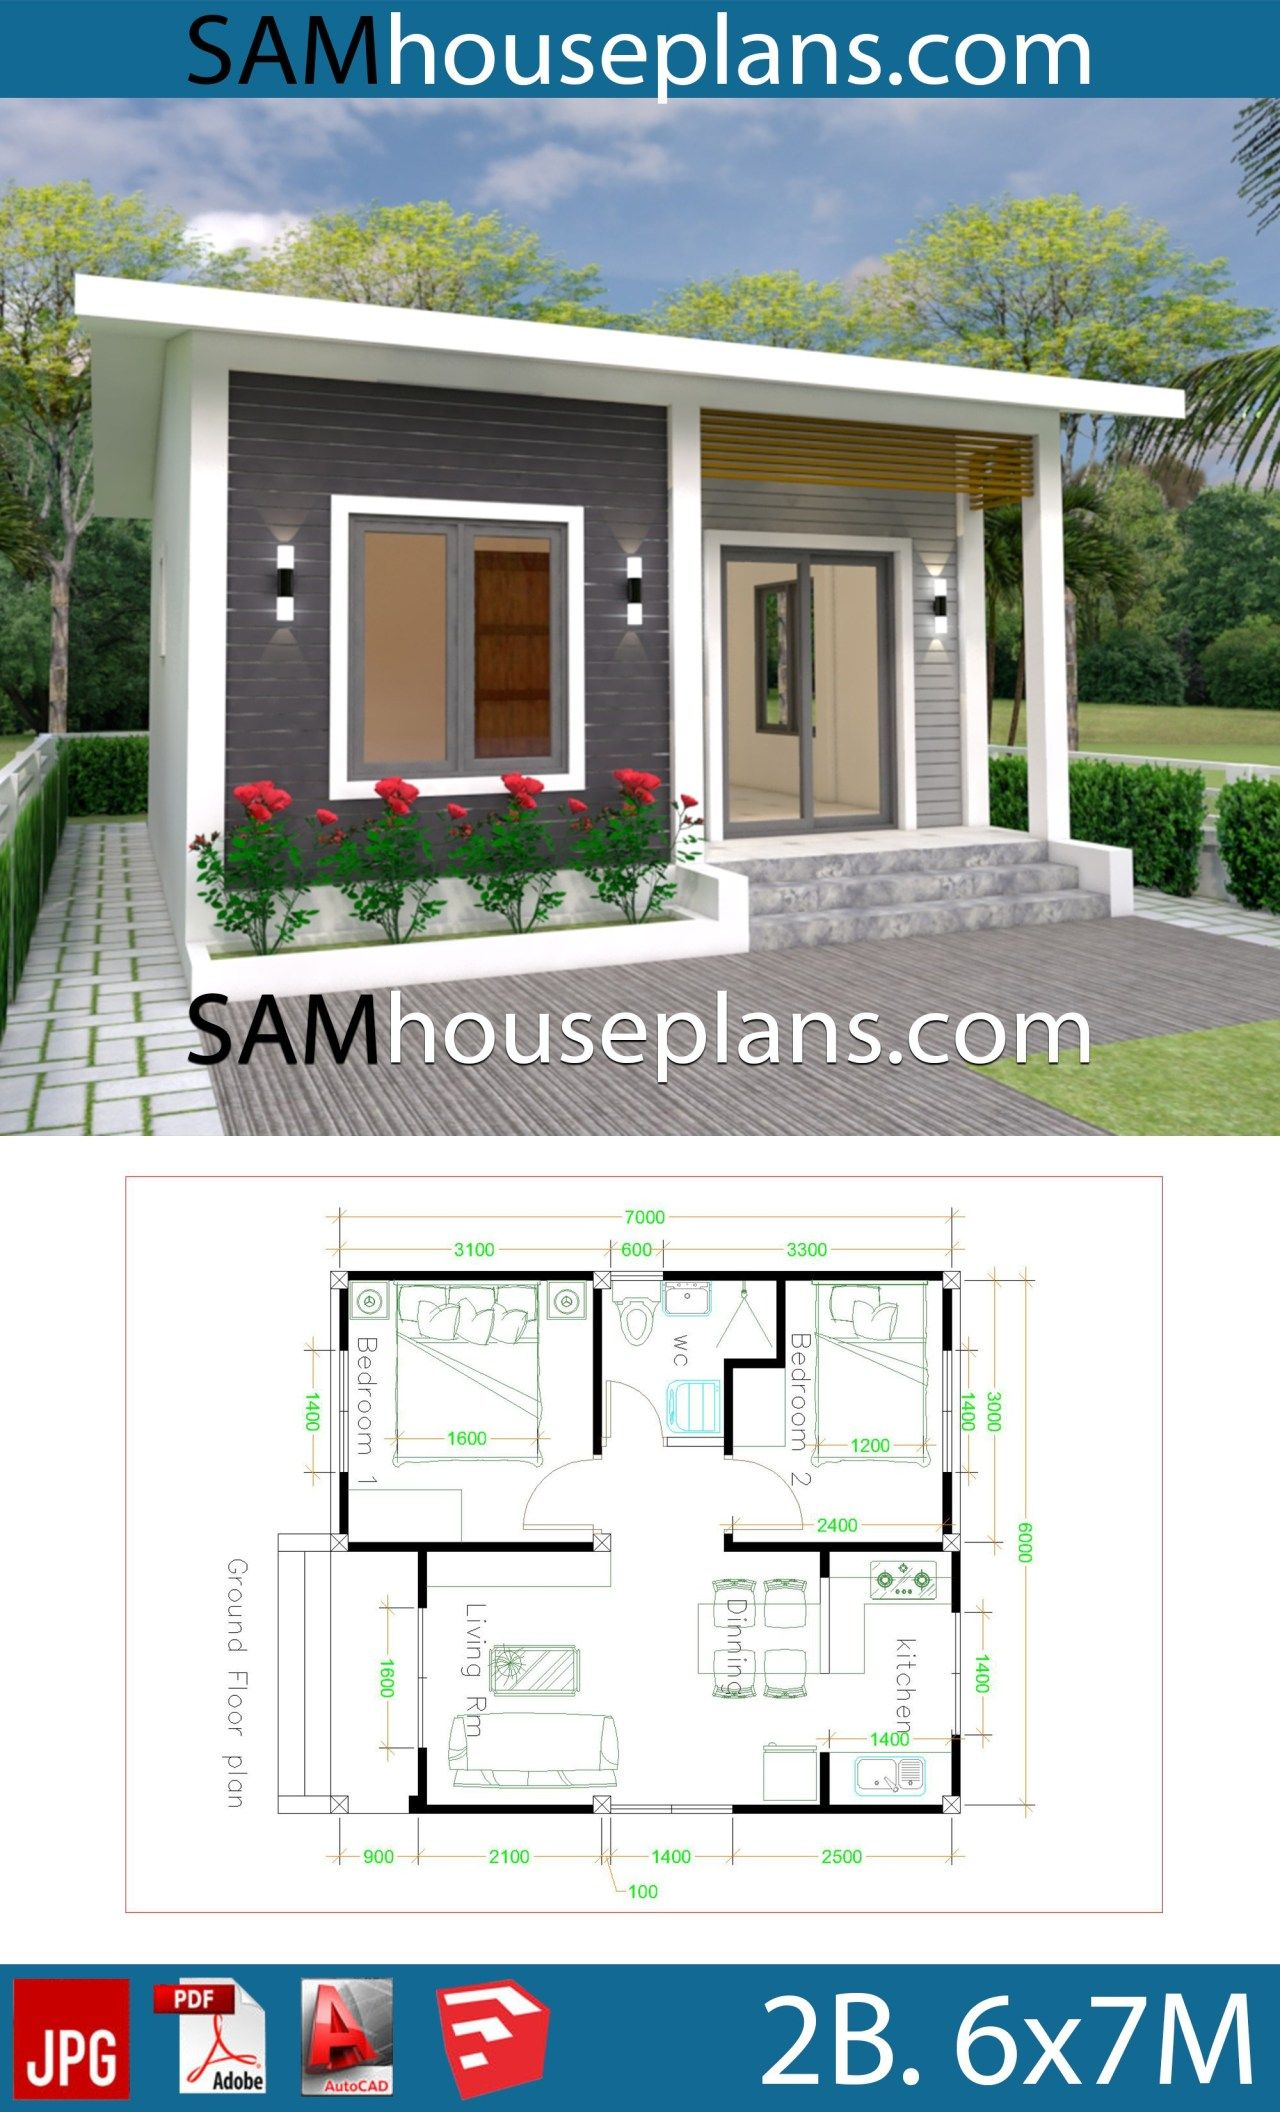 House Plans 6x7m With 2 Bedrooms Bungalow House Design Simple